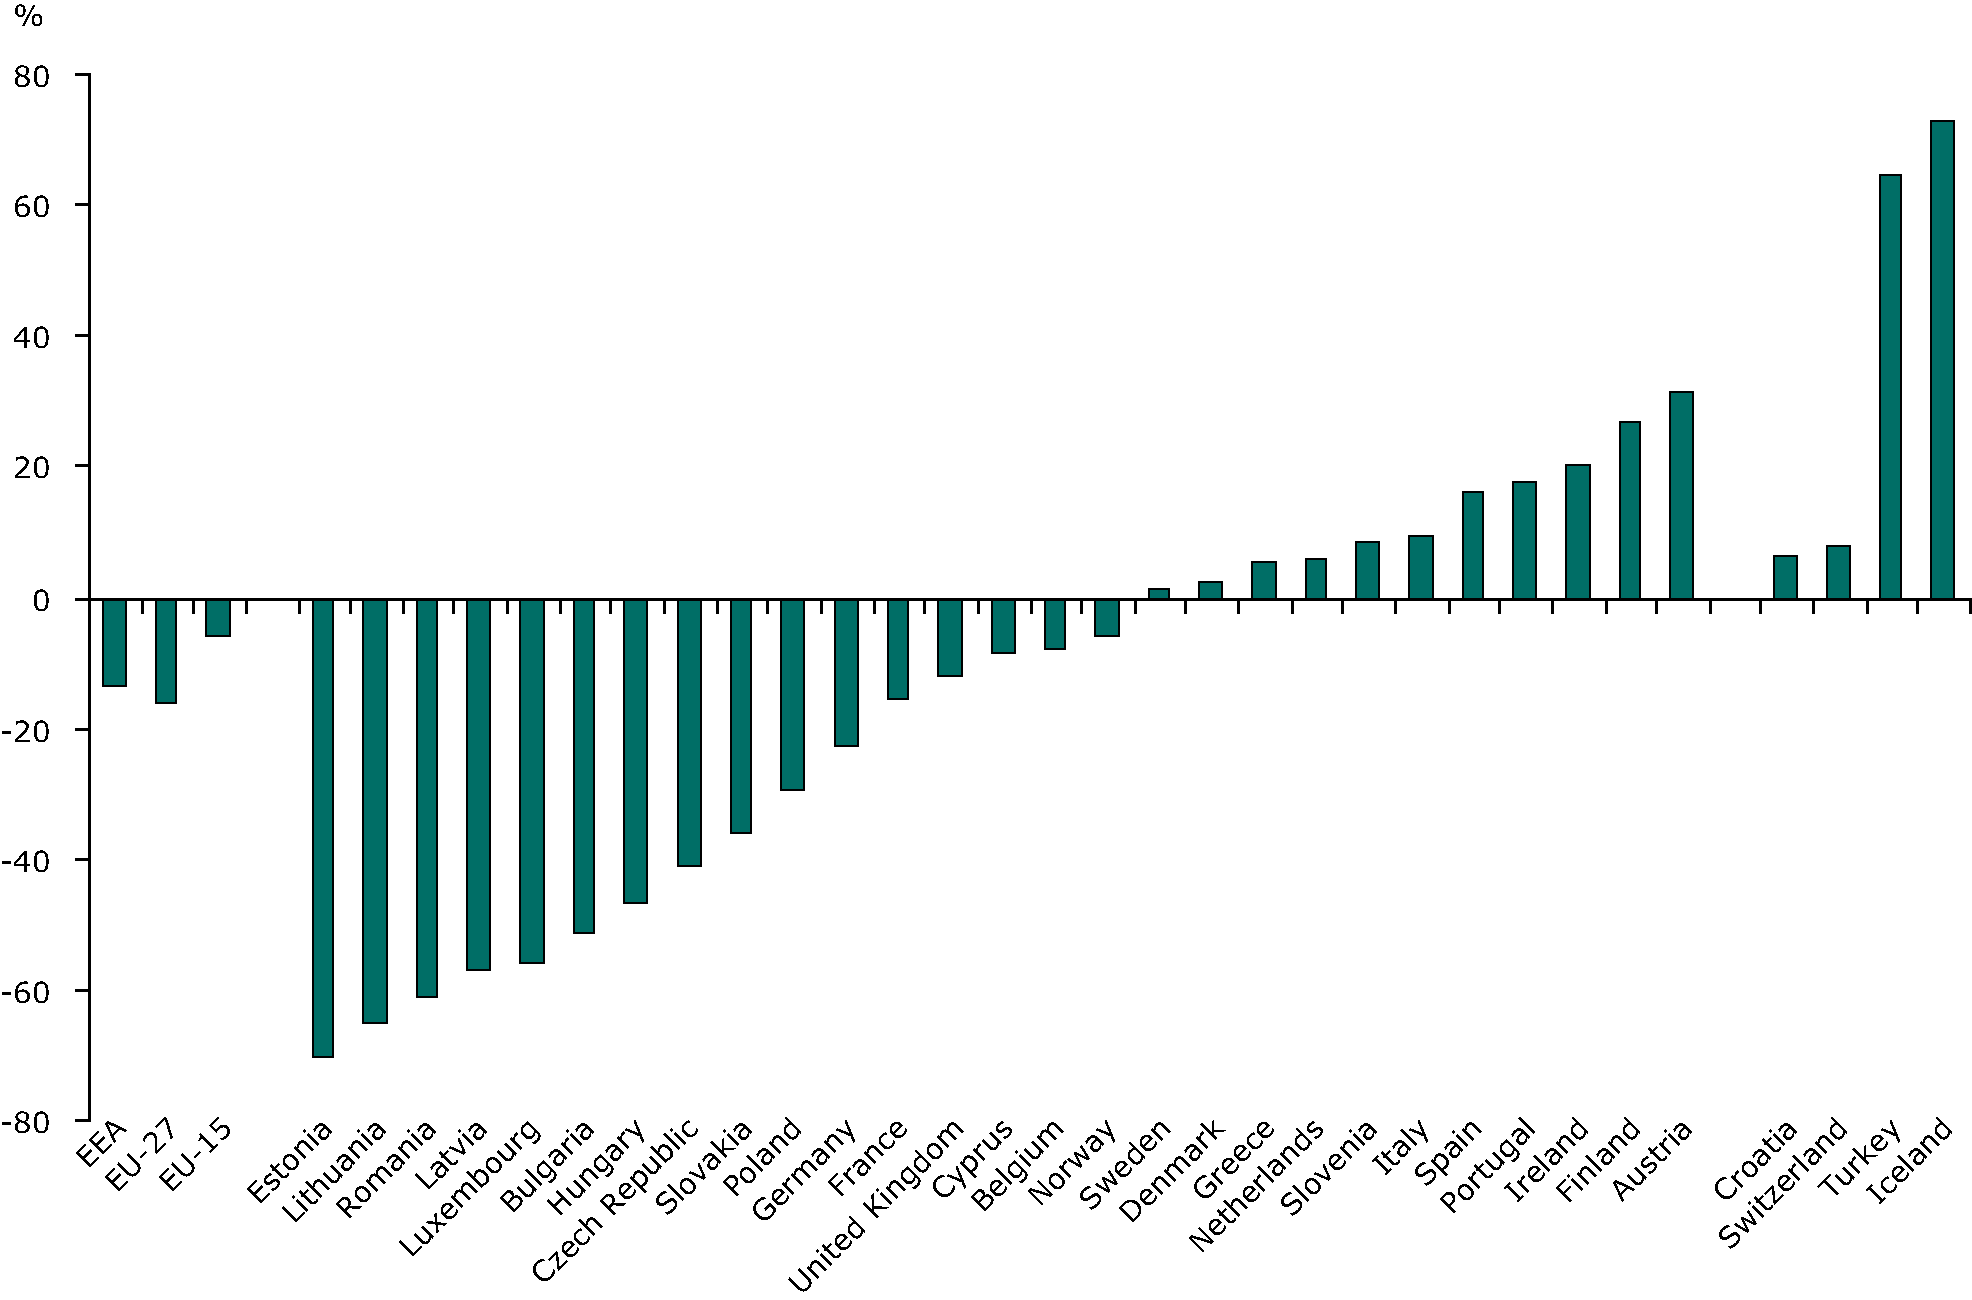 % change in industry final energy consumption per capita (1990-2007)